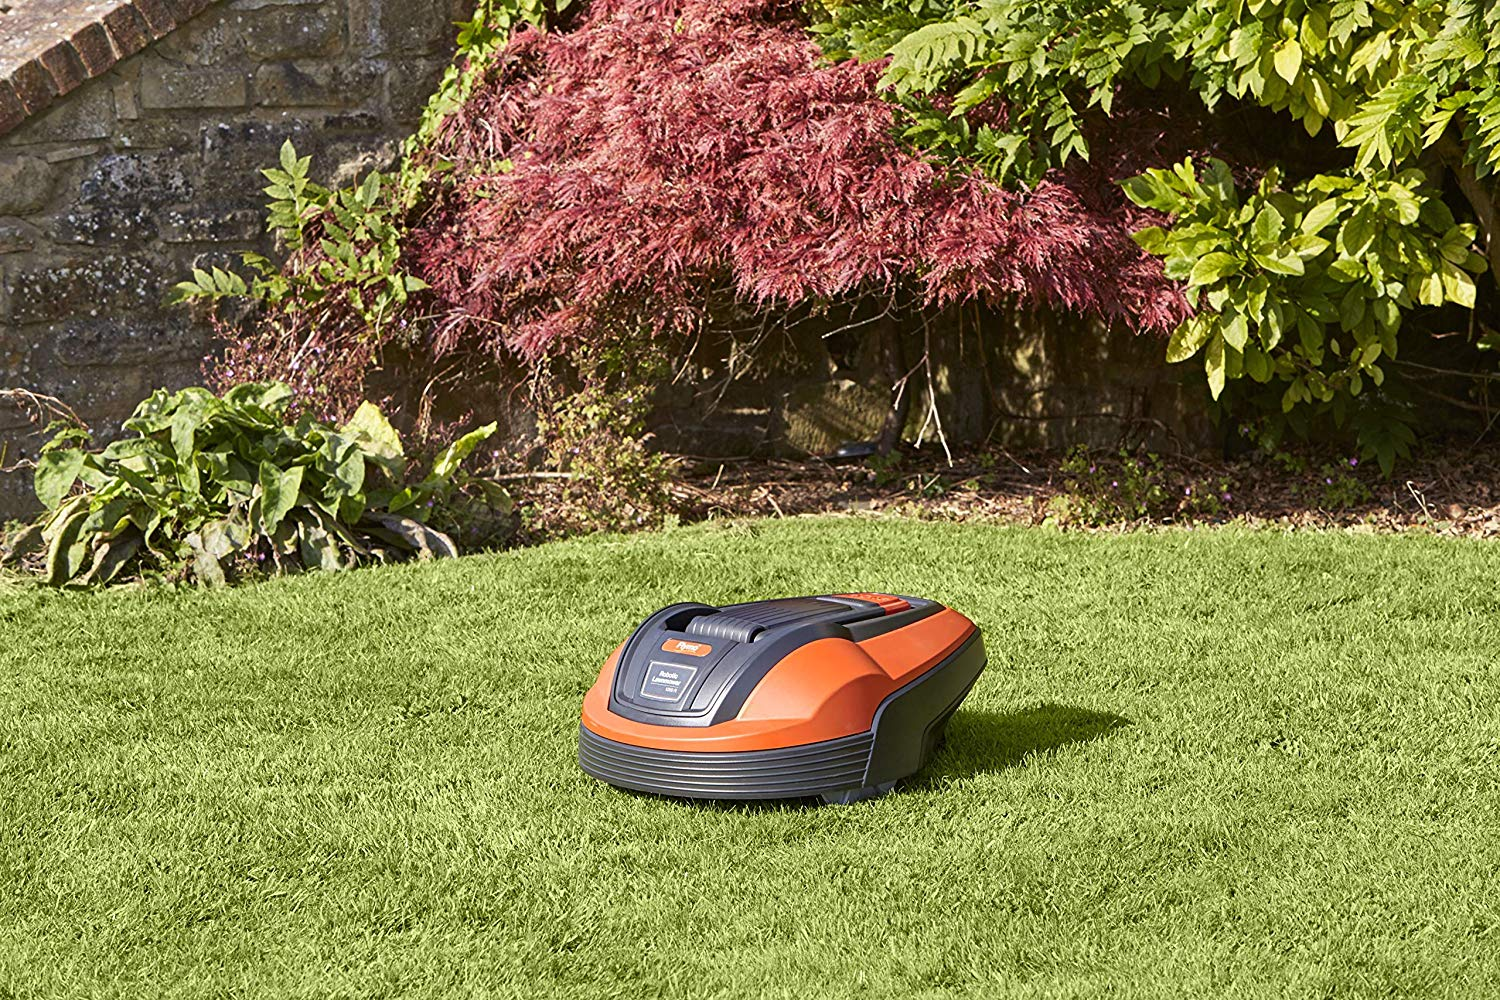 Flymo 1200R Robotic Mower Review